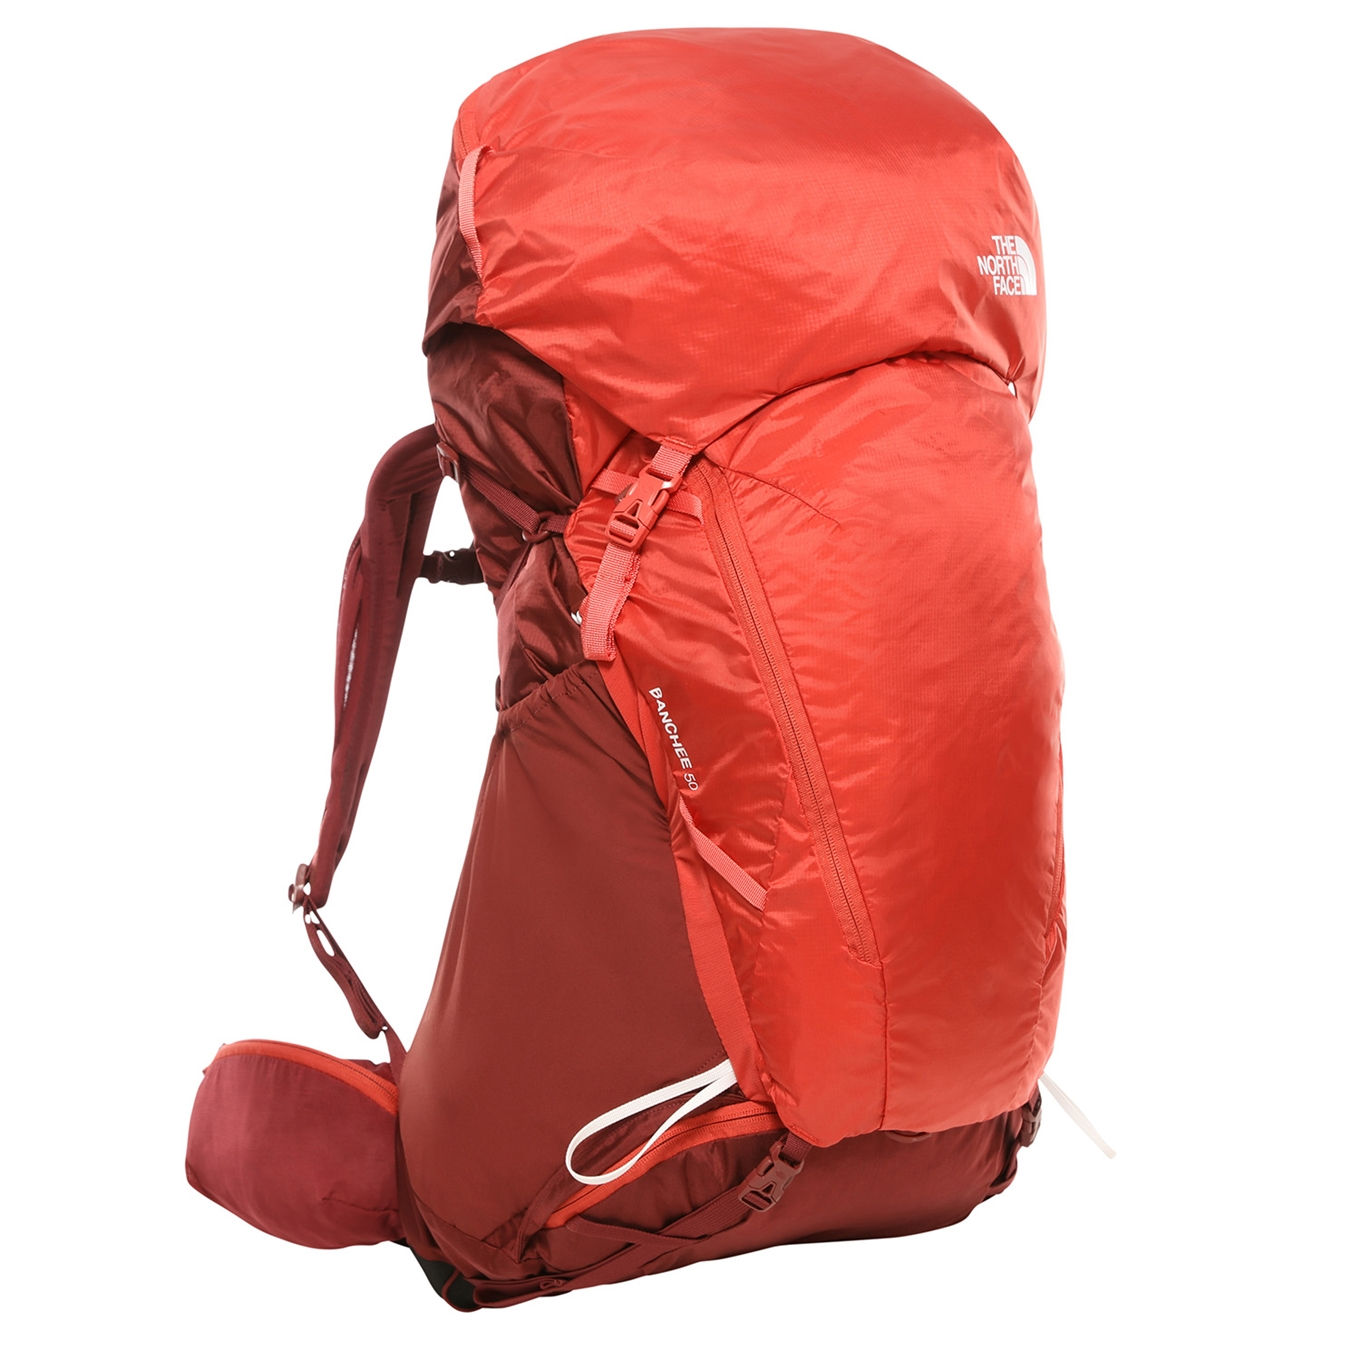 The North Face Womens Banchee 50 Backpak XS/S barolo red / sunbaked red backpack <br/></noscript><img class=